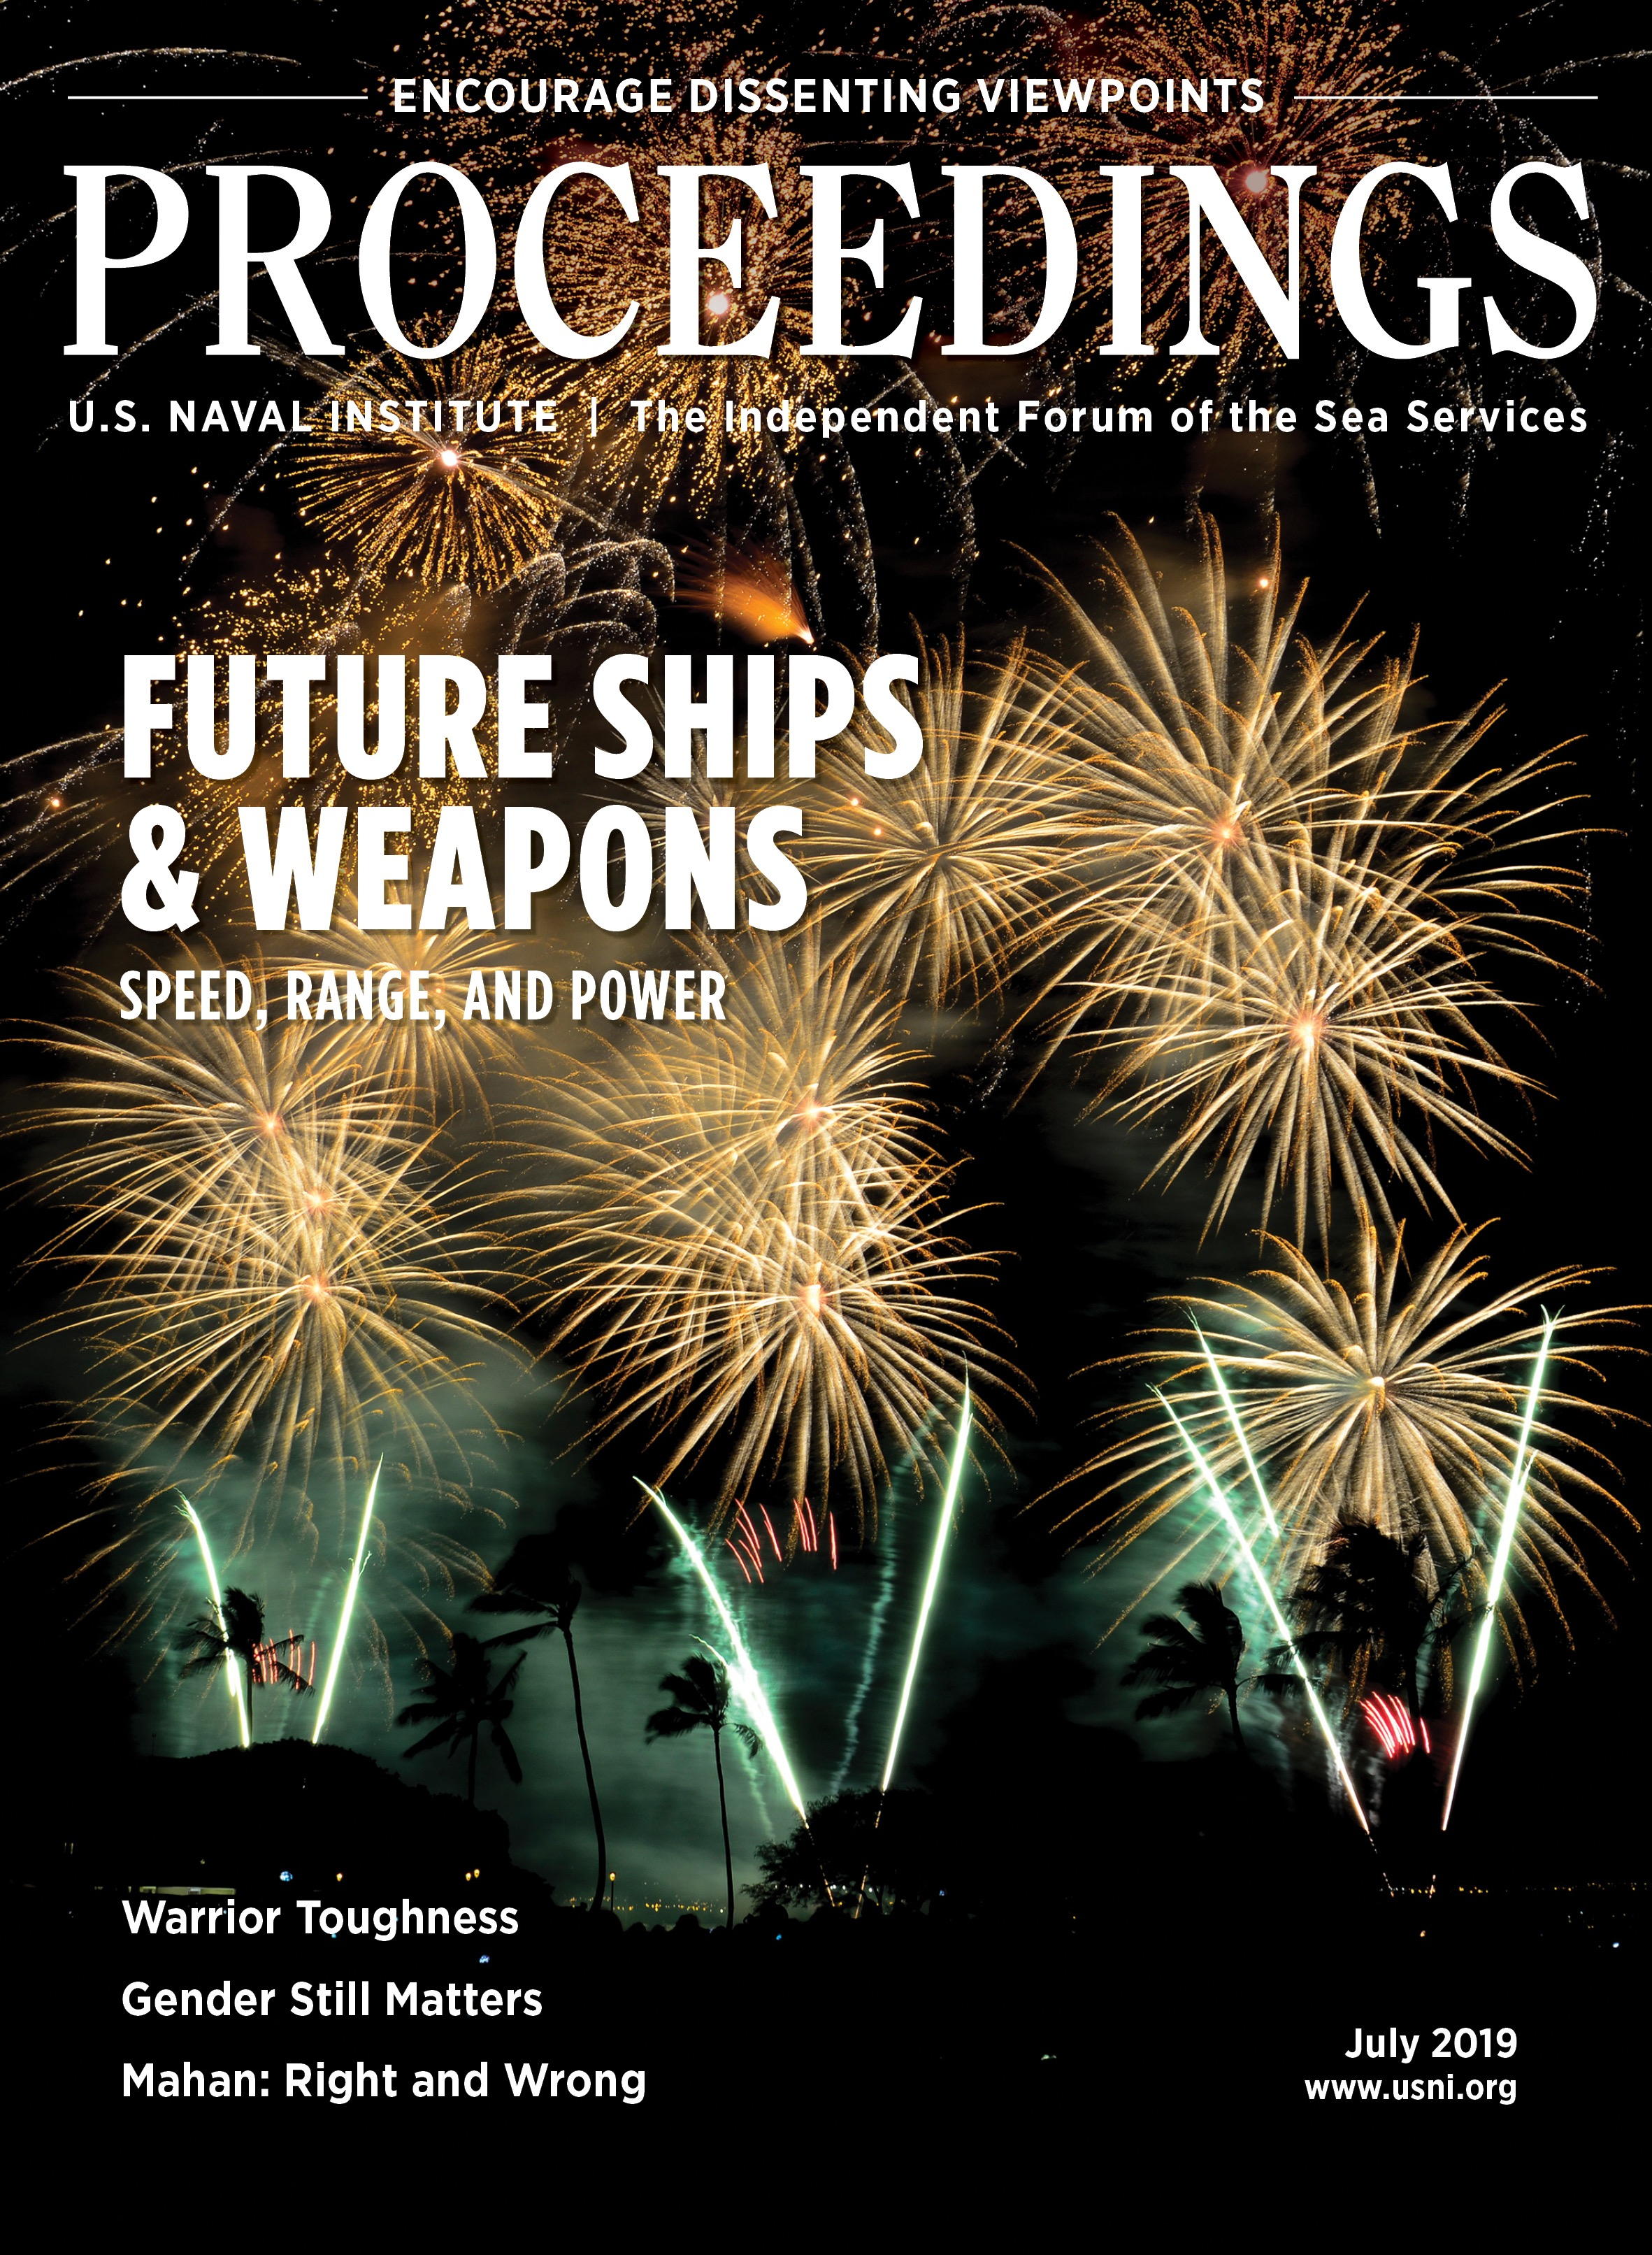 Proceedings - July 2019 Vol. 145/7/1,397 Cover